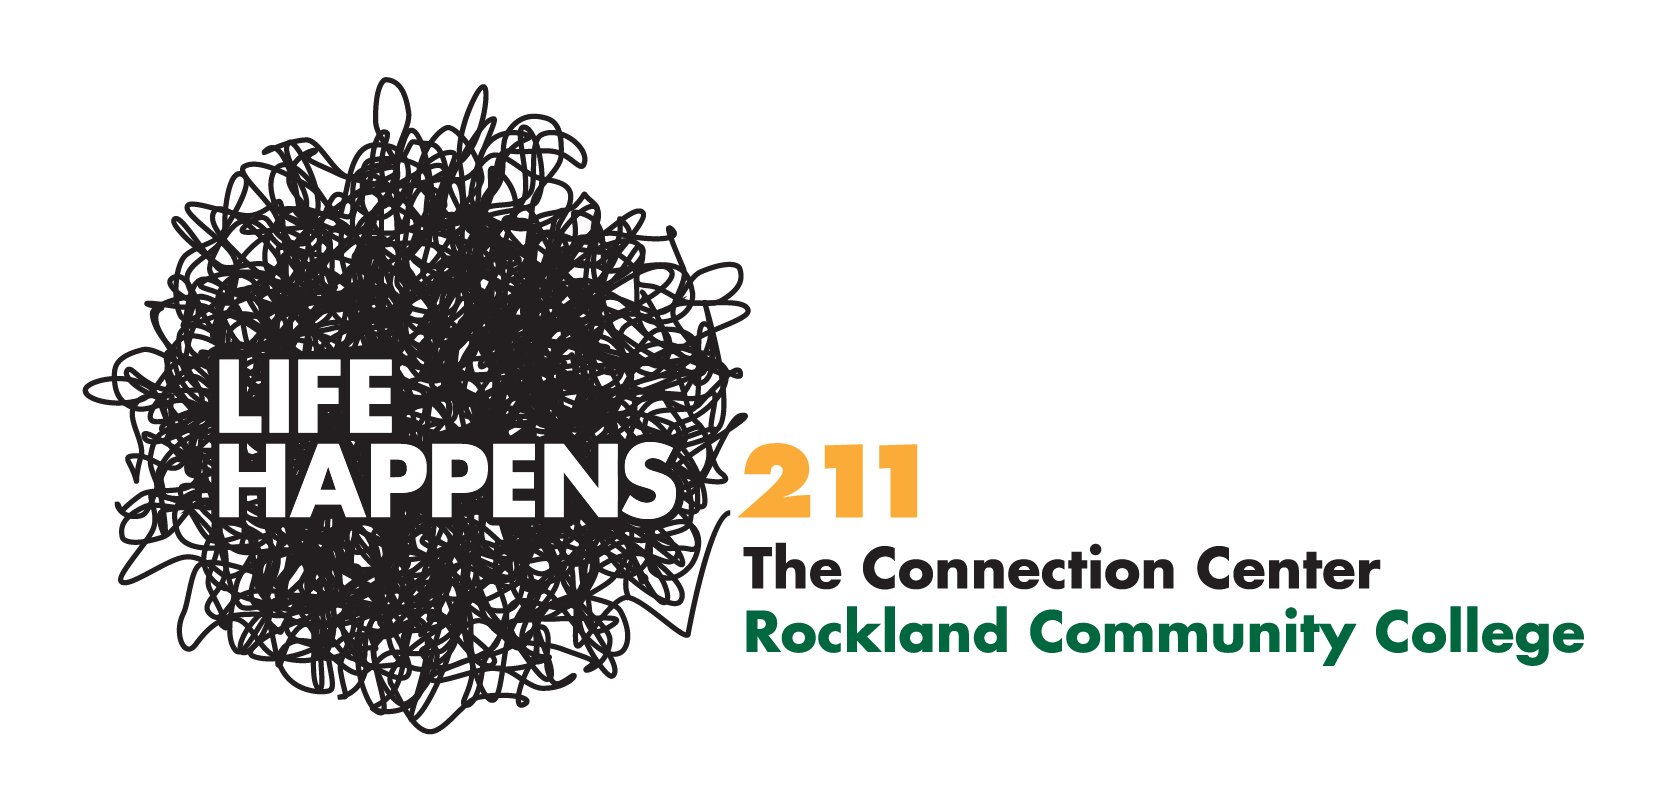 Rockland Community College, The Connection Center, Life Happens 211, The Byne Group logo, branding